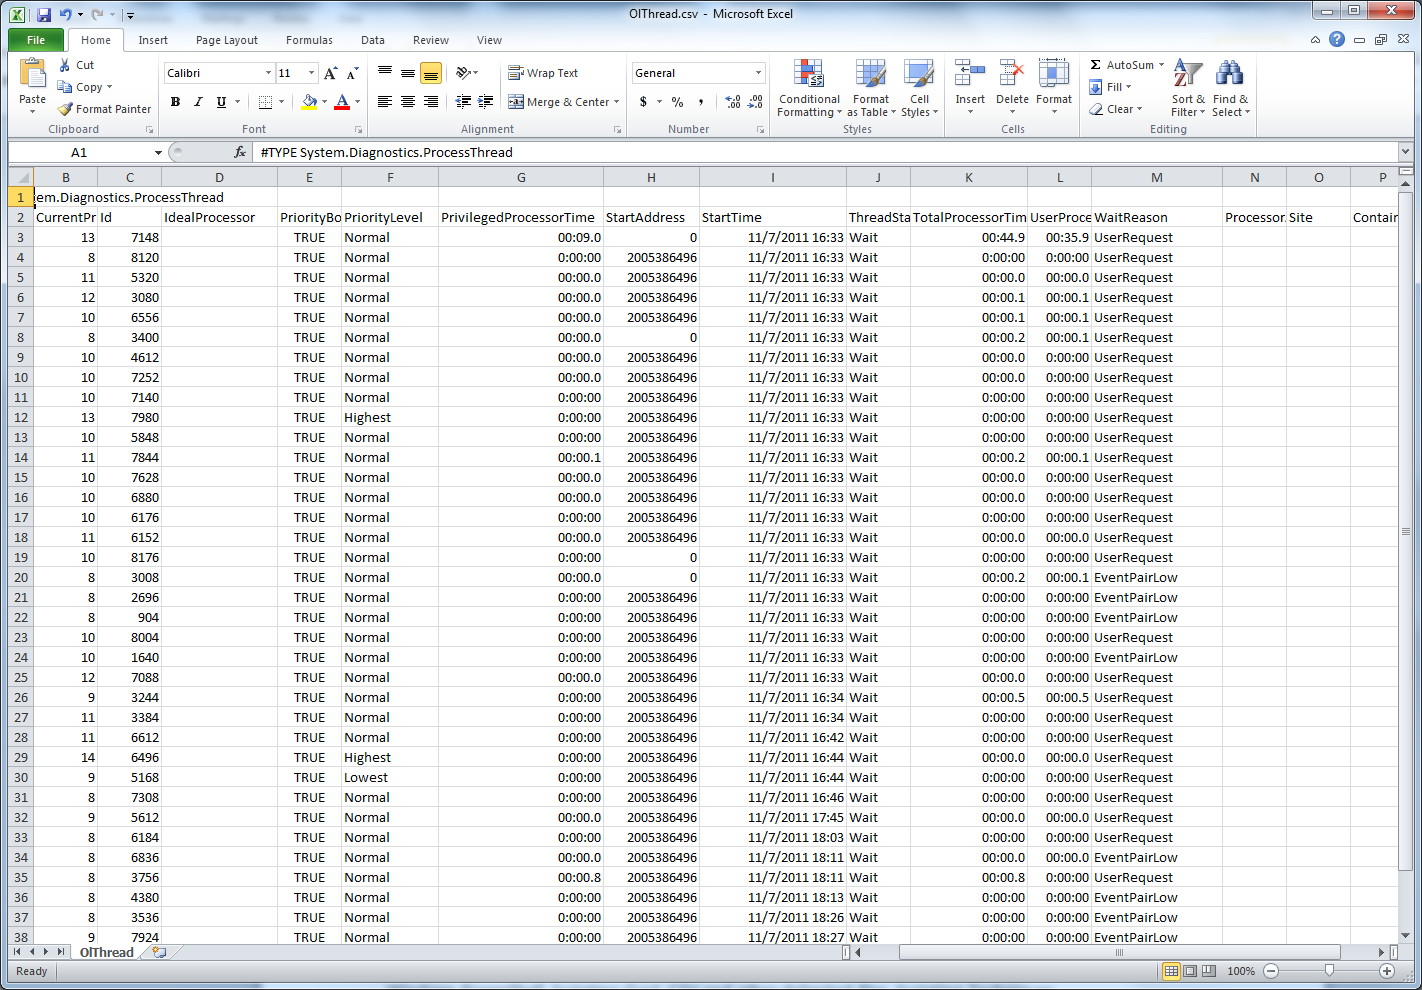 Image of newly created CSV file opened in Excel